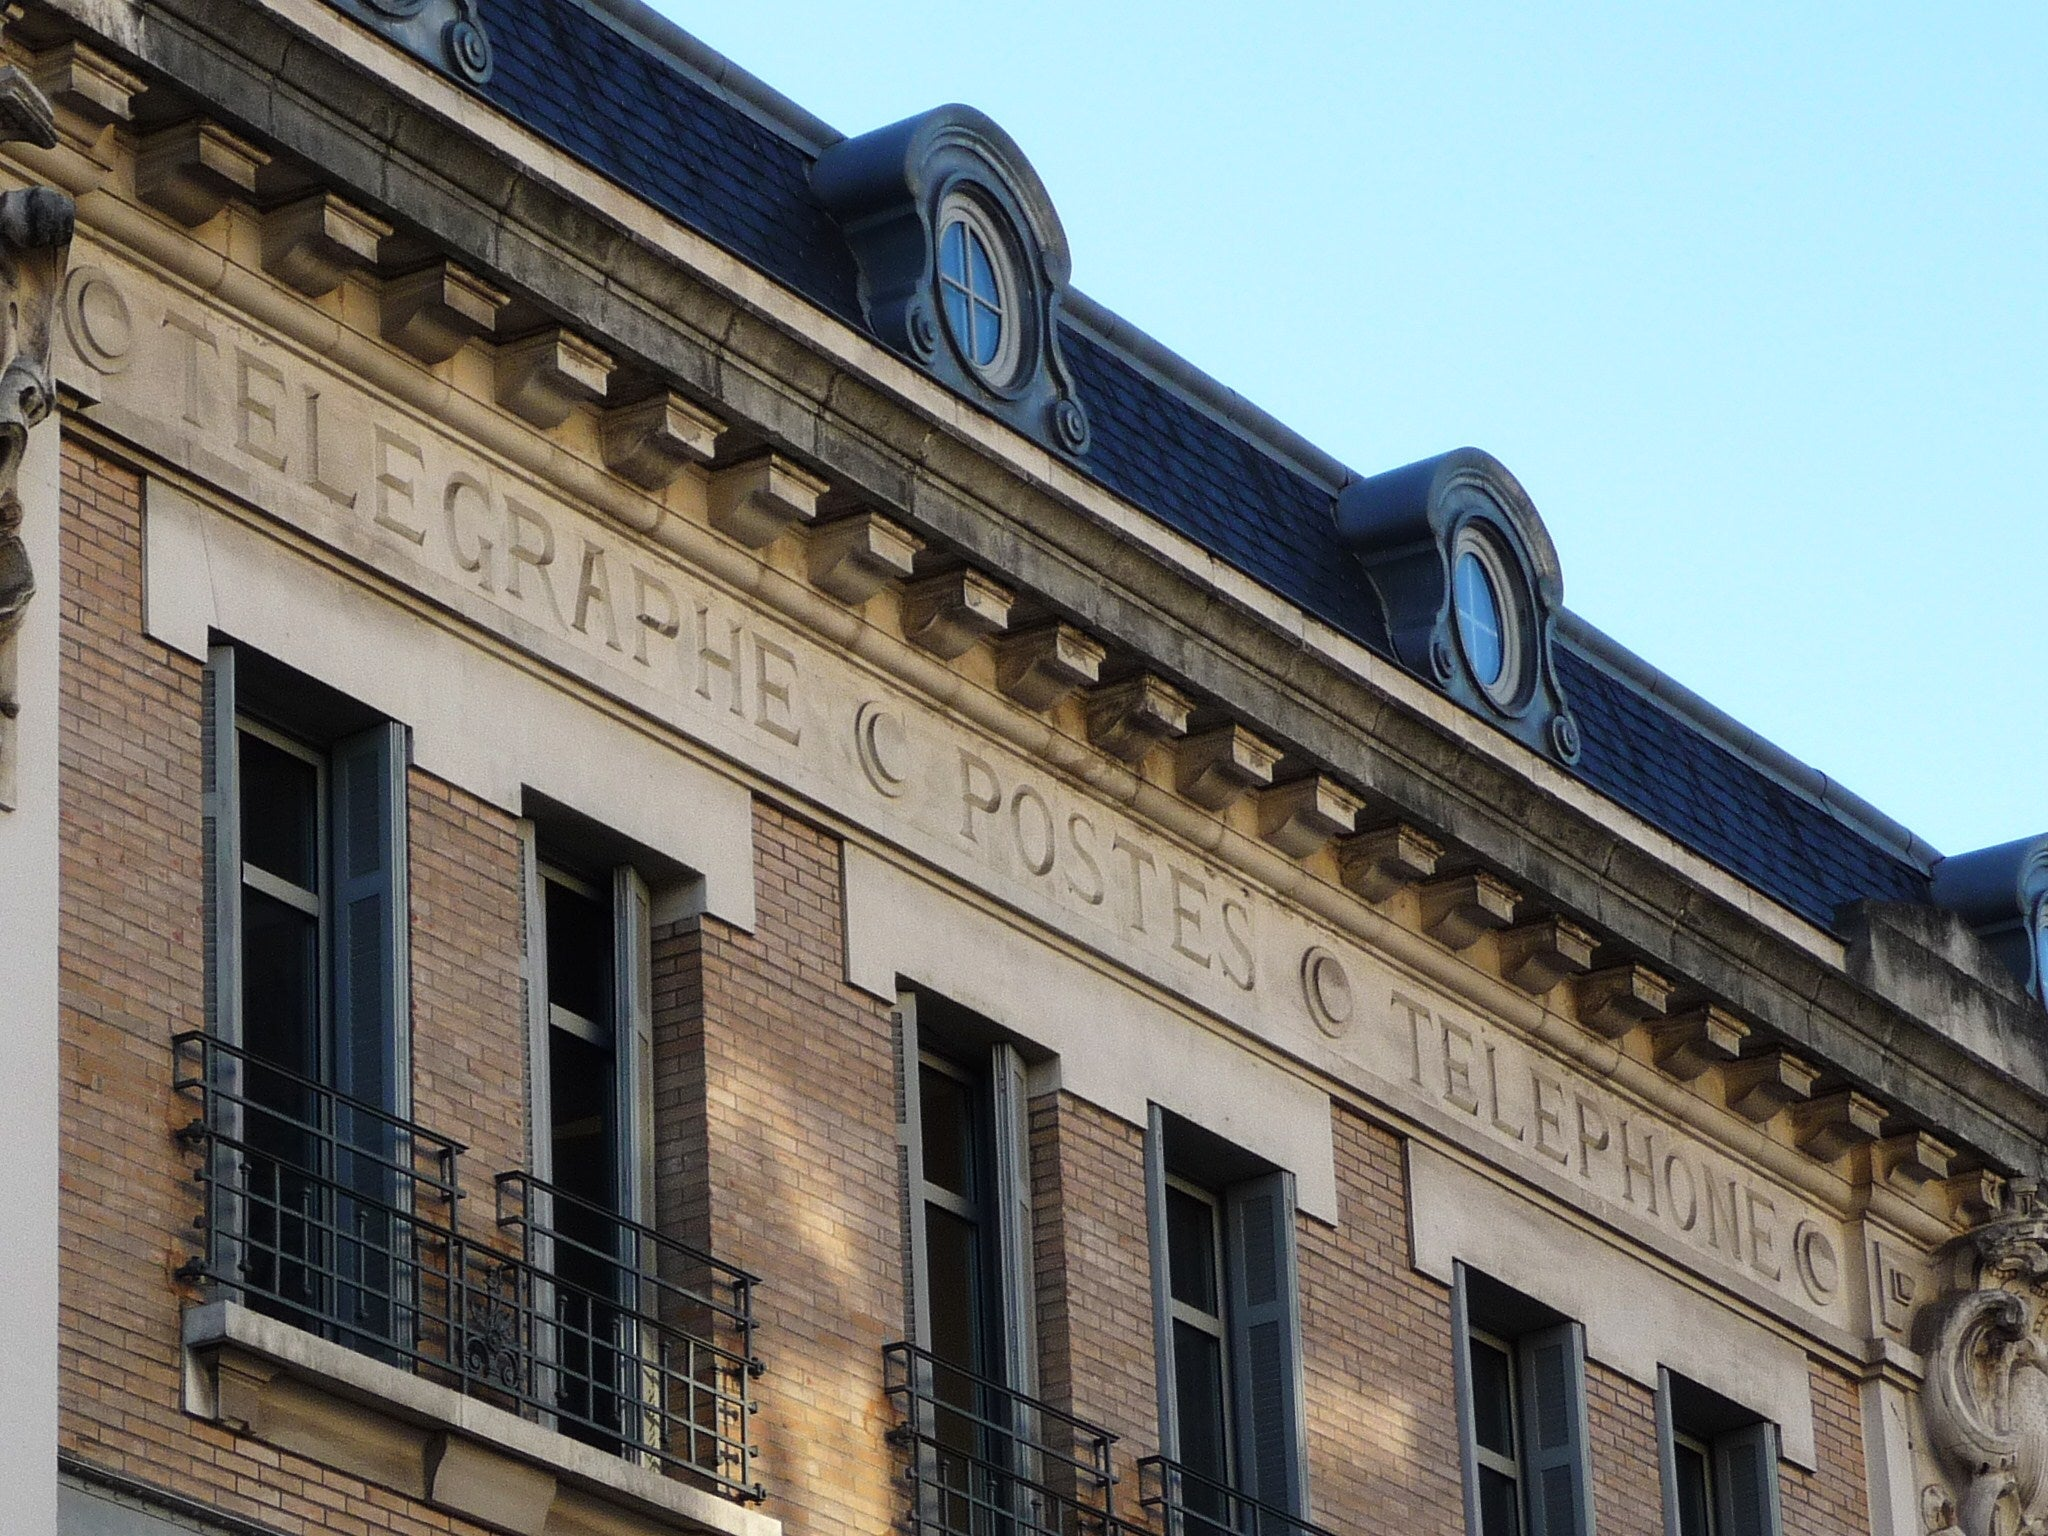 Old Post Office building, Telegraphs and telephones